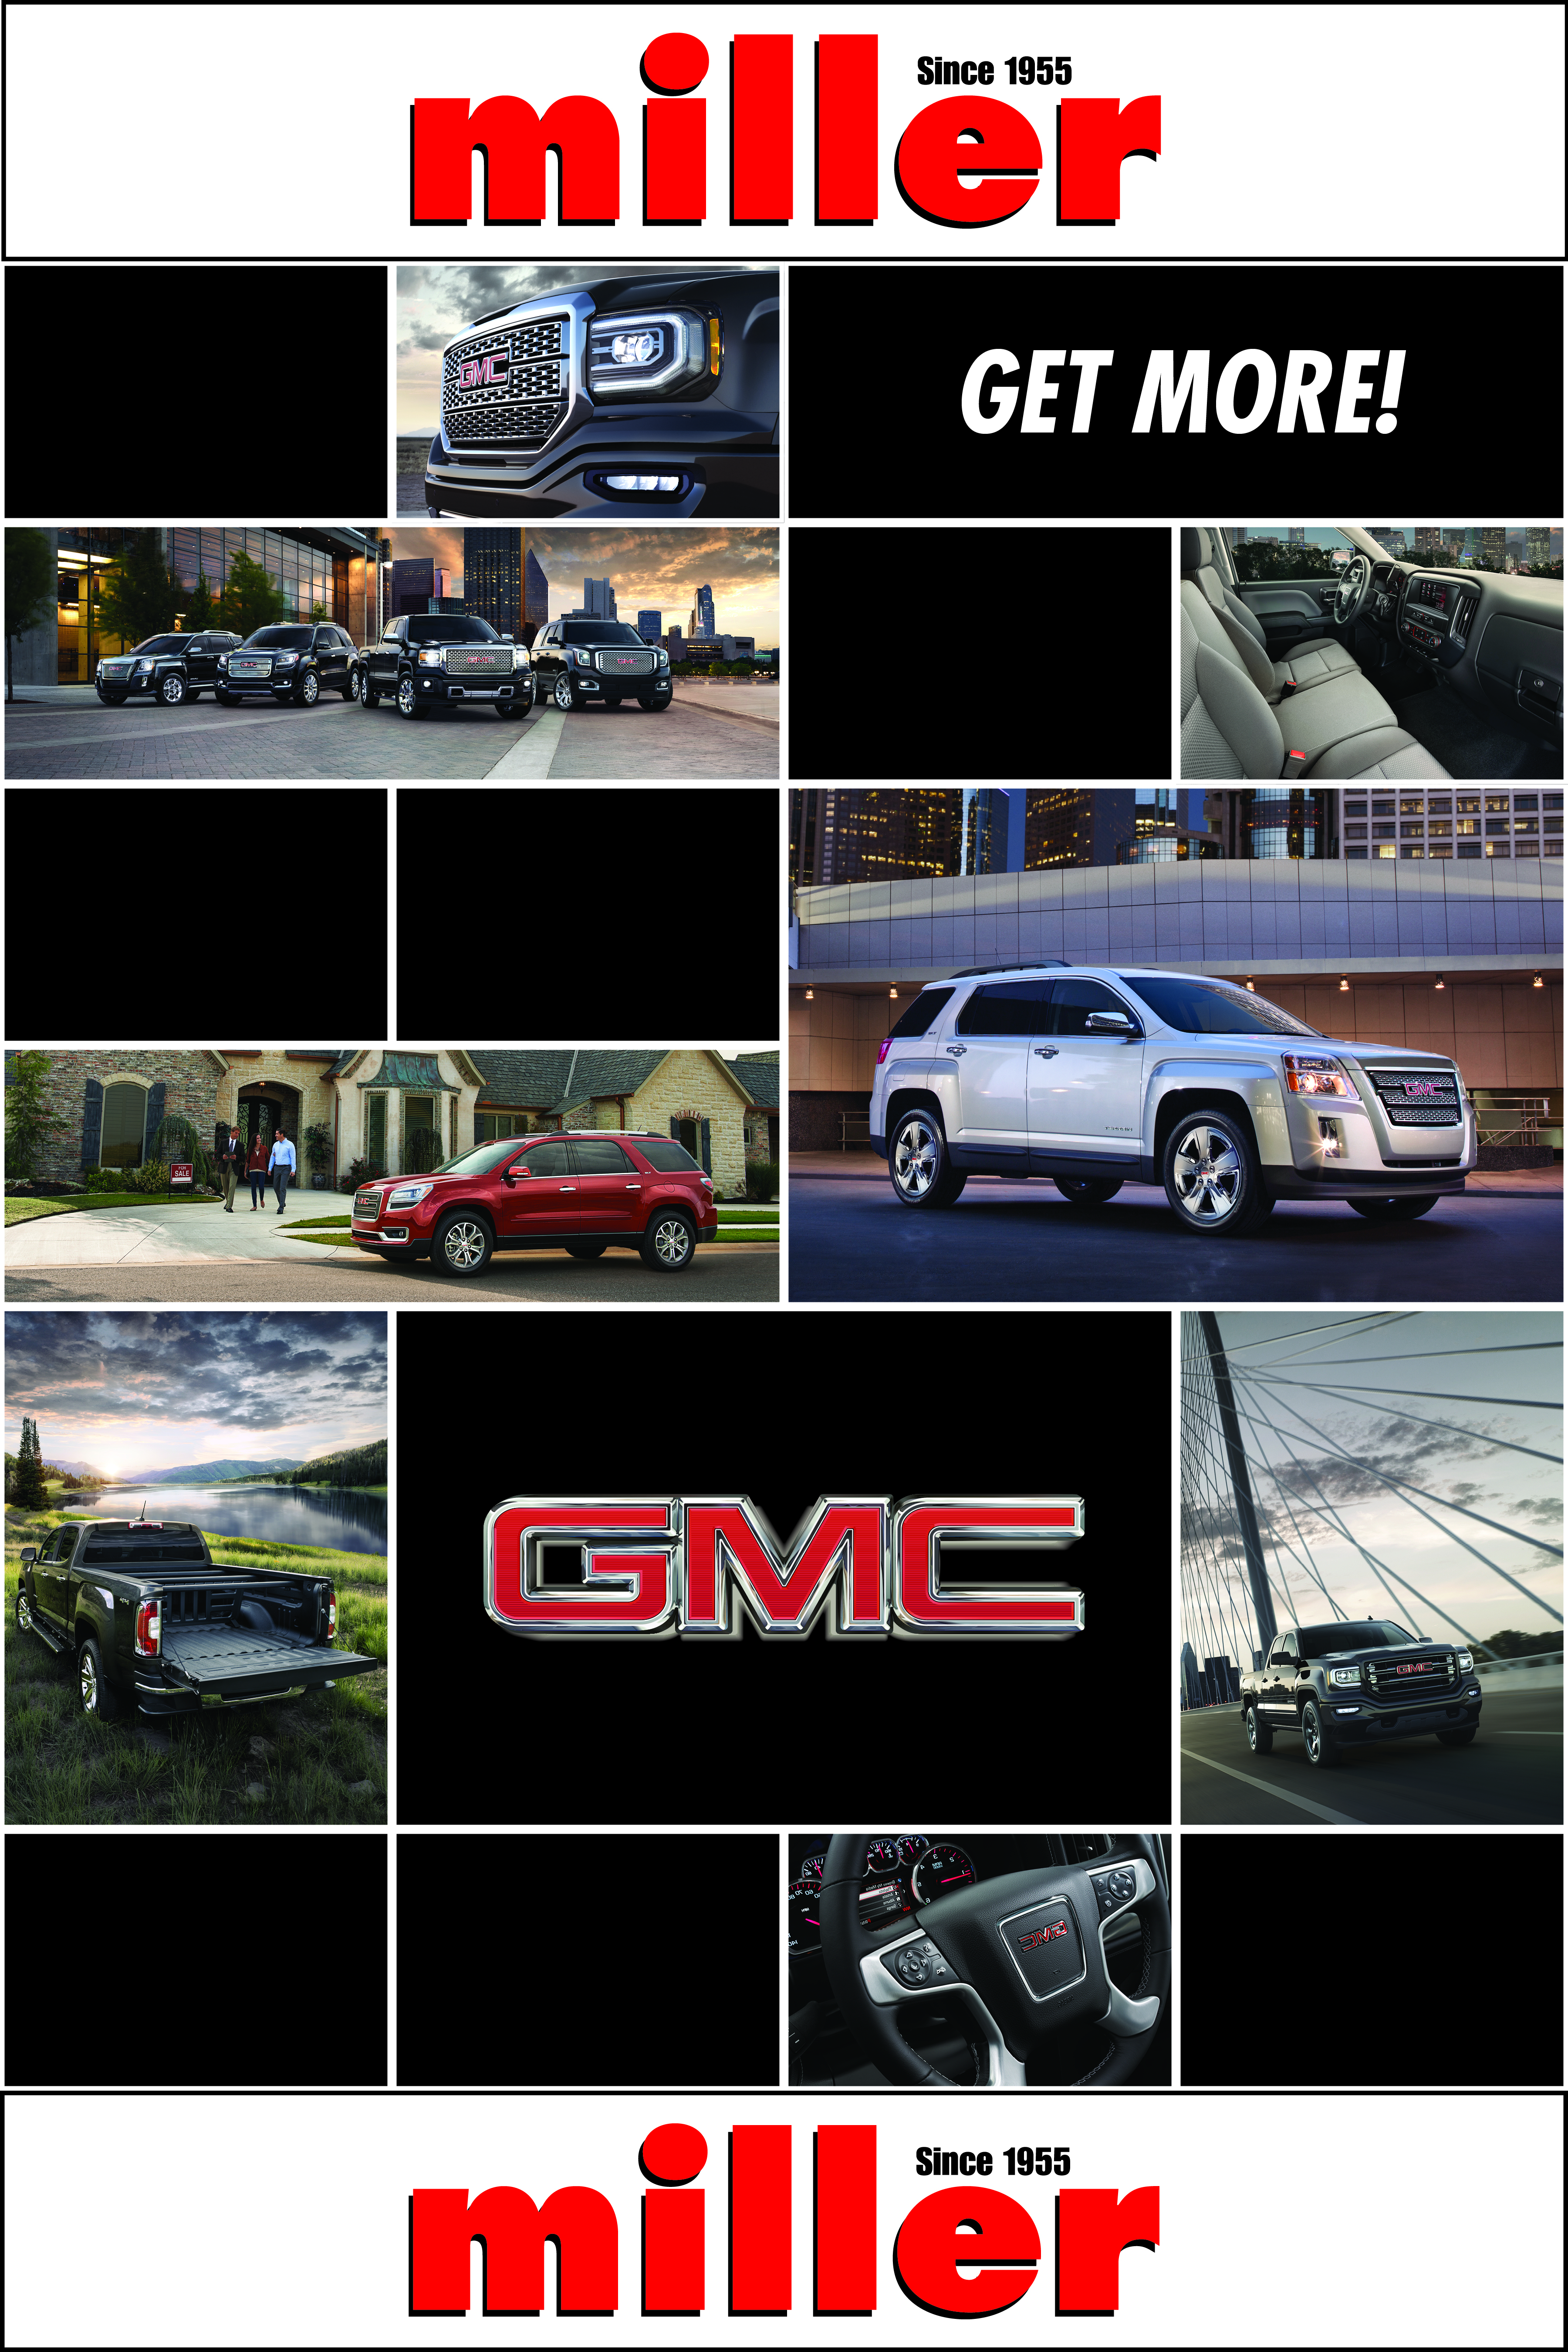 GMC Poster